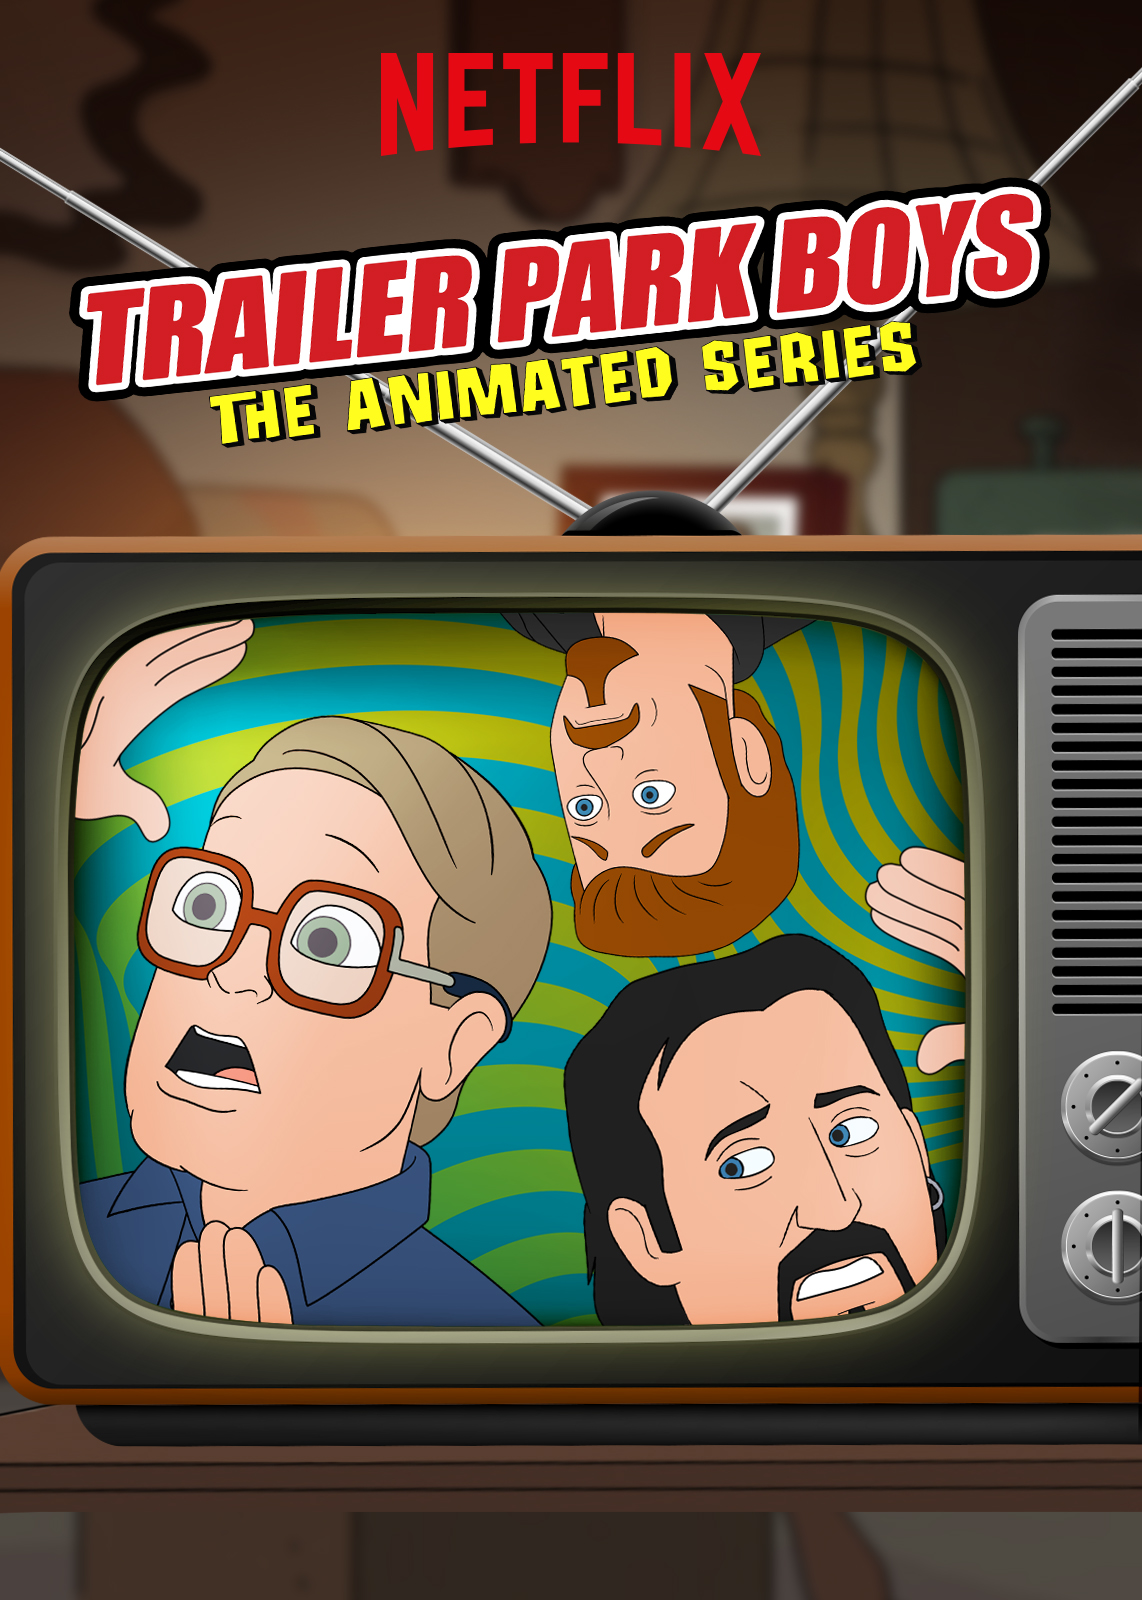 Trailer.Park.Boys.The.Animated.Series.S02E02.SPANiSH.720p.WEB.x264-4FiRE